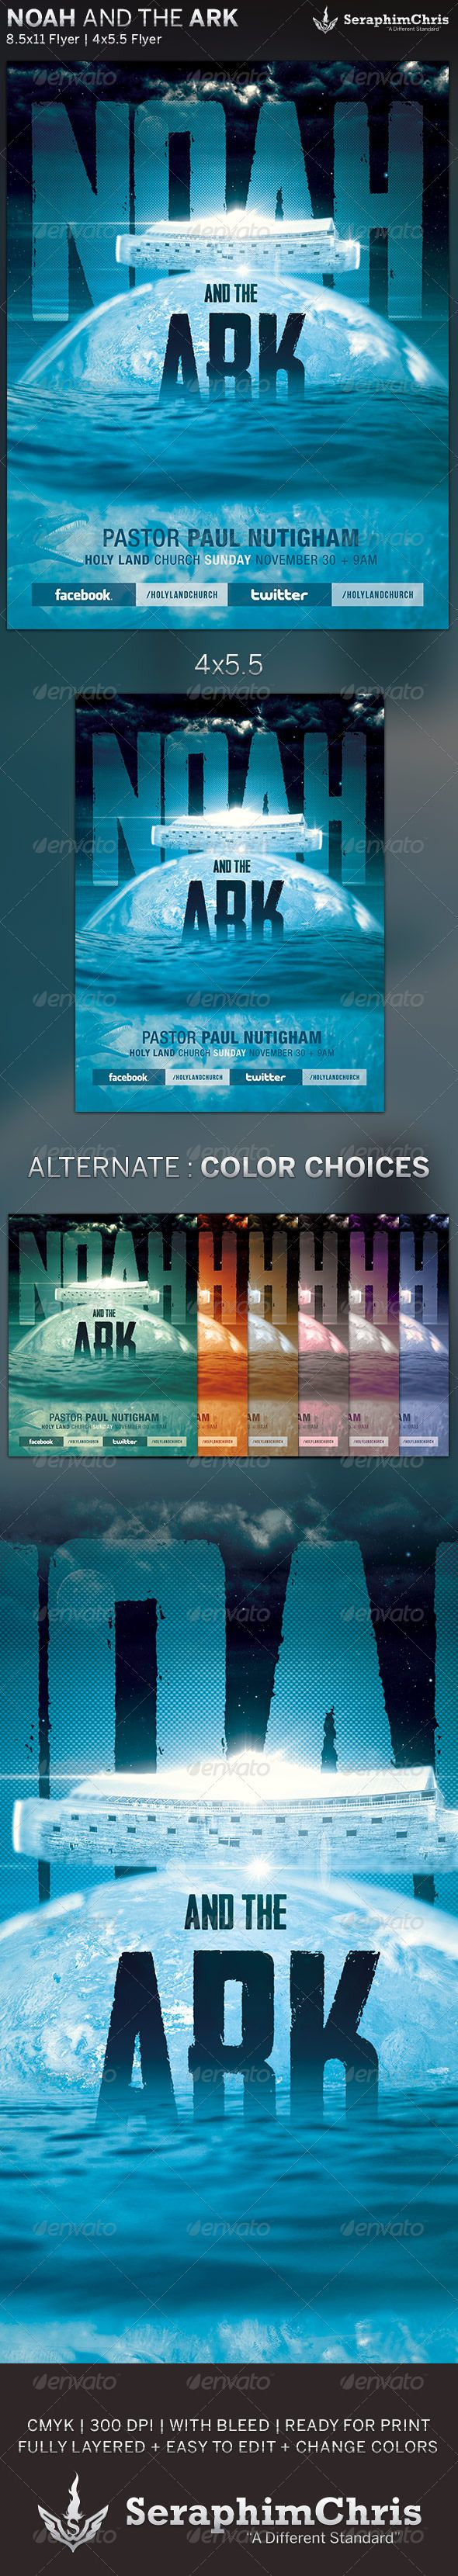 noah and the ark church flyer template flyer template church noah and the ark church flyer template is designed for church events and sermons that